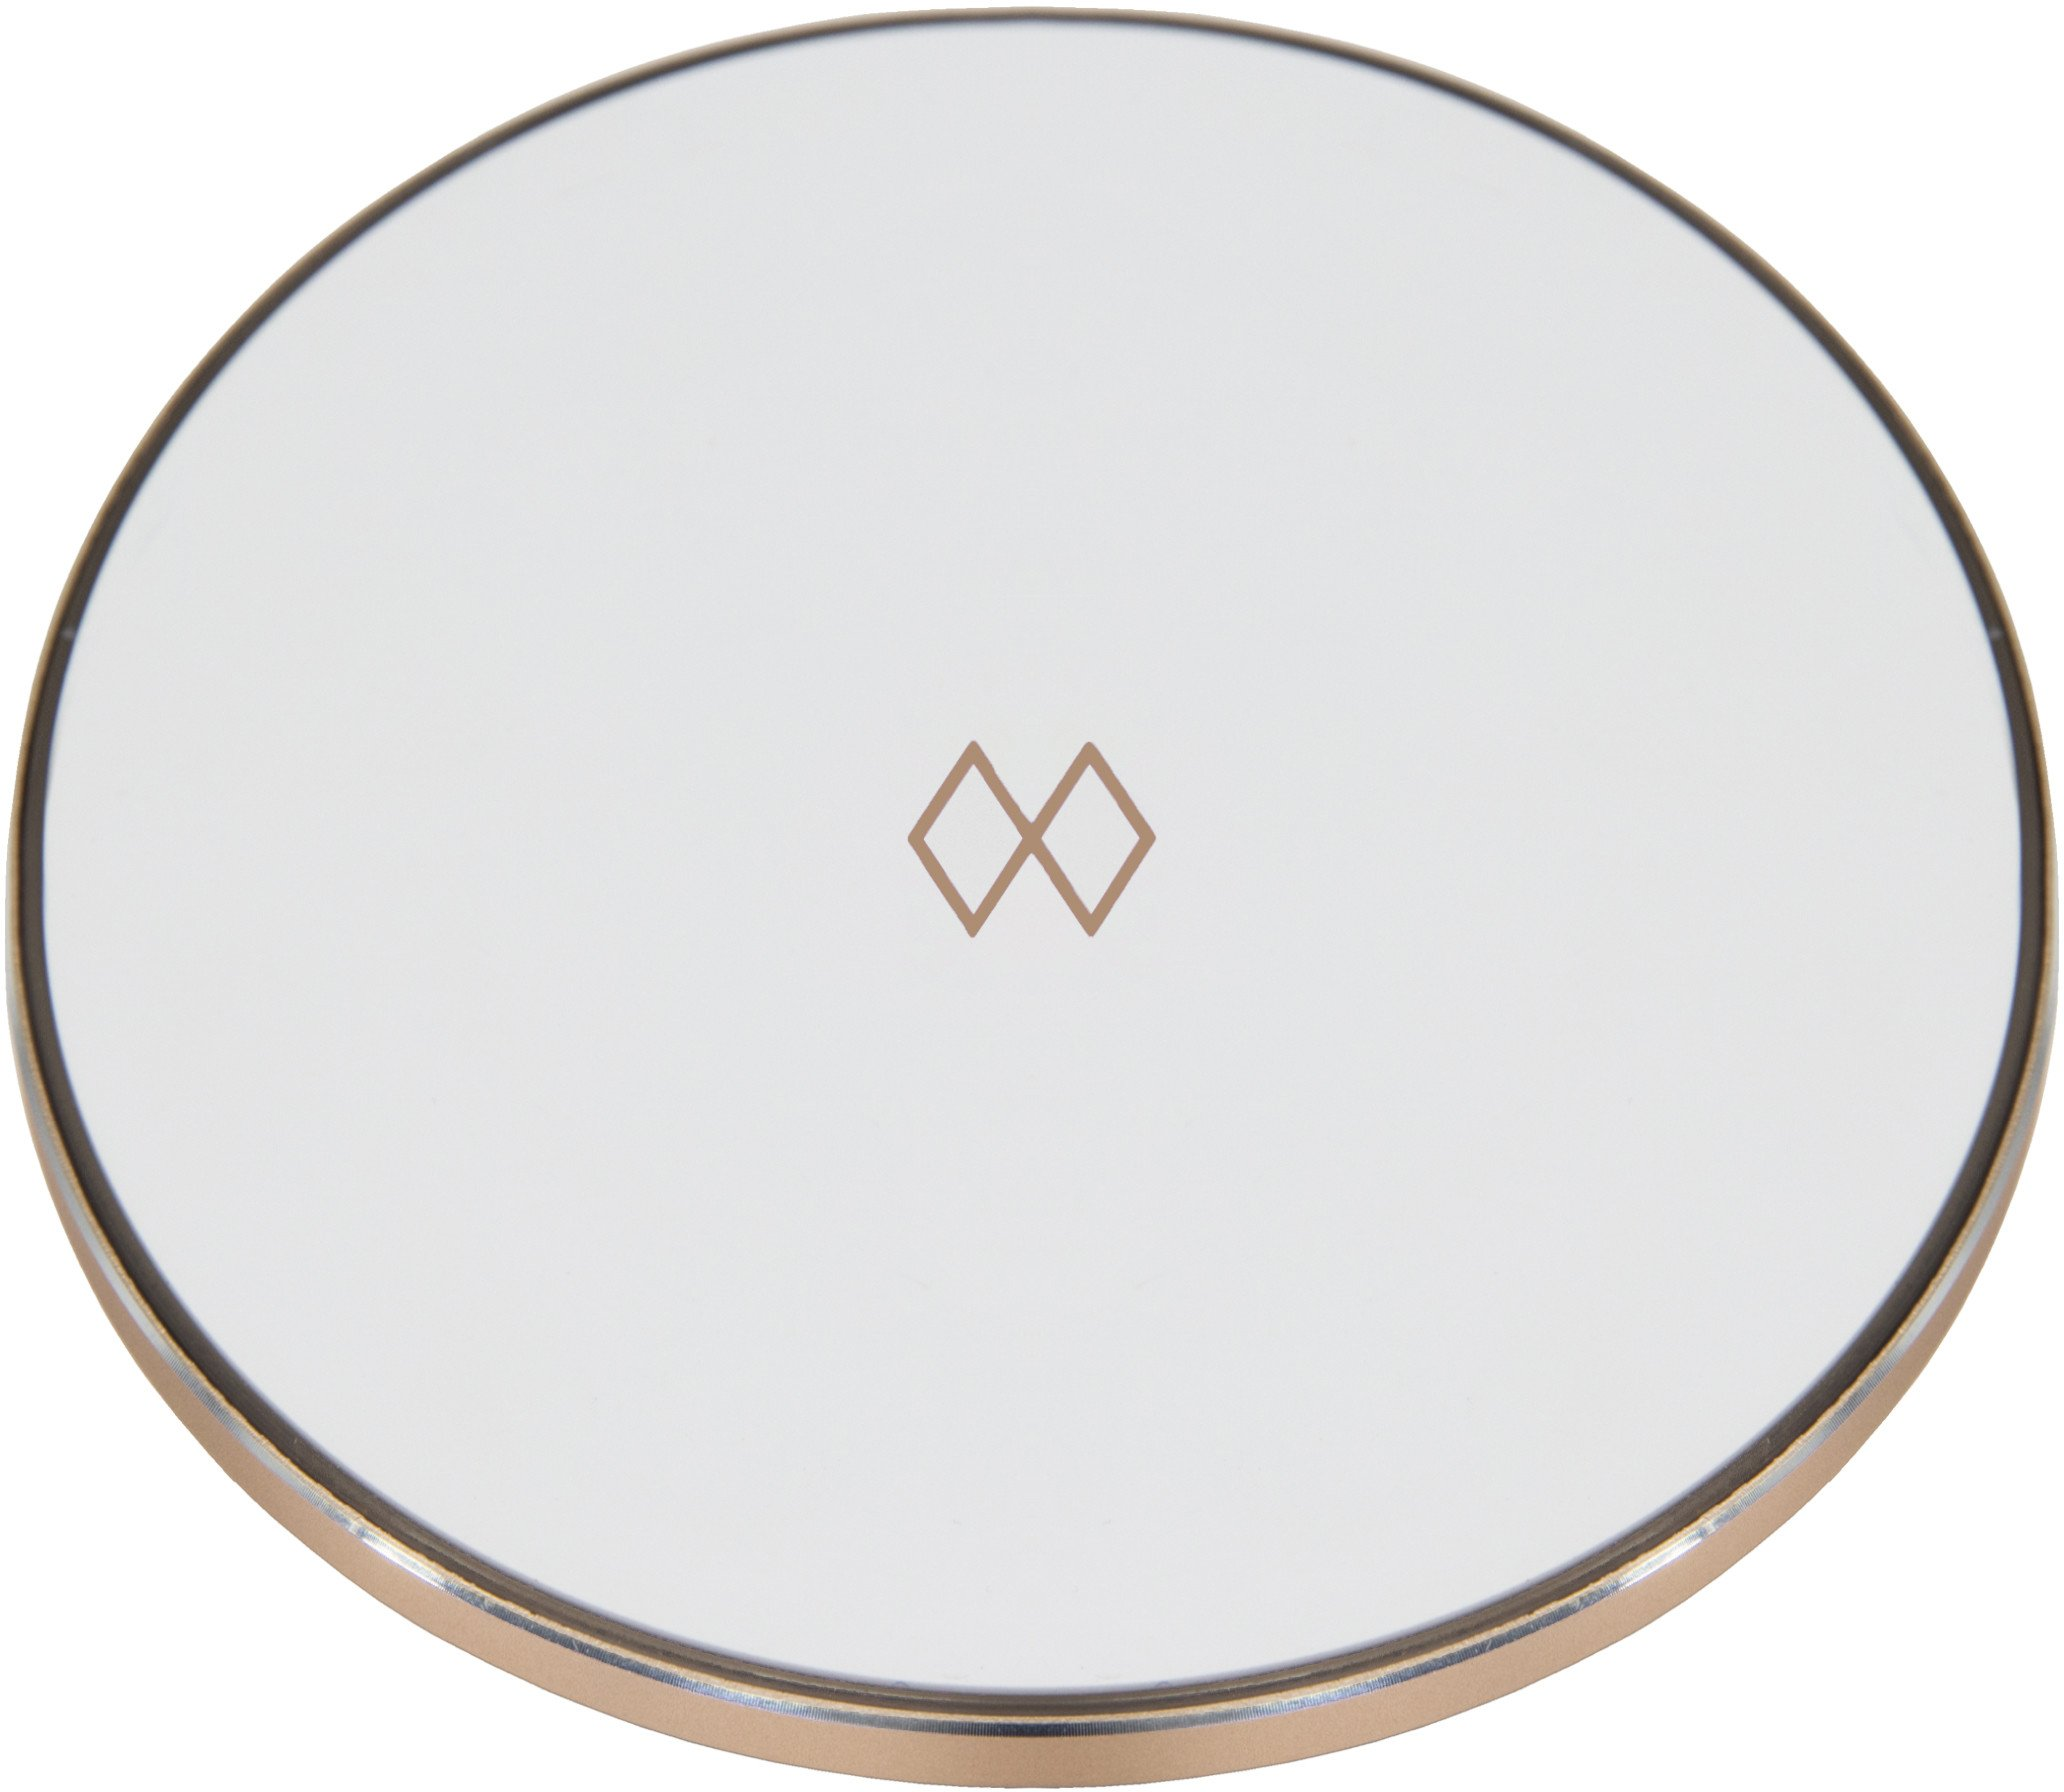 Wireless Charger Unifier White, UMAGE, Denmark